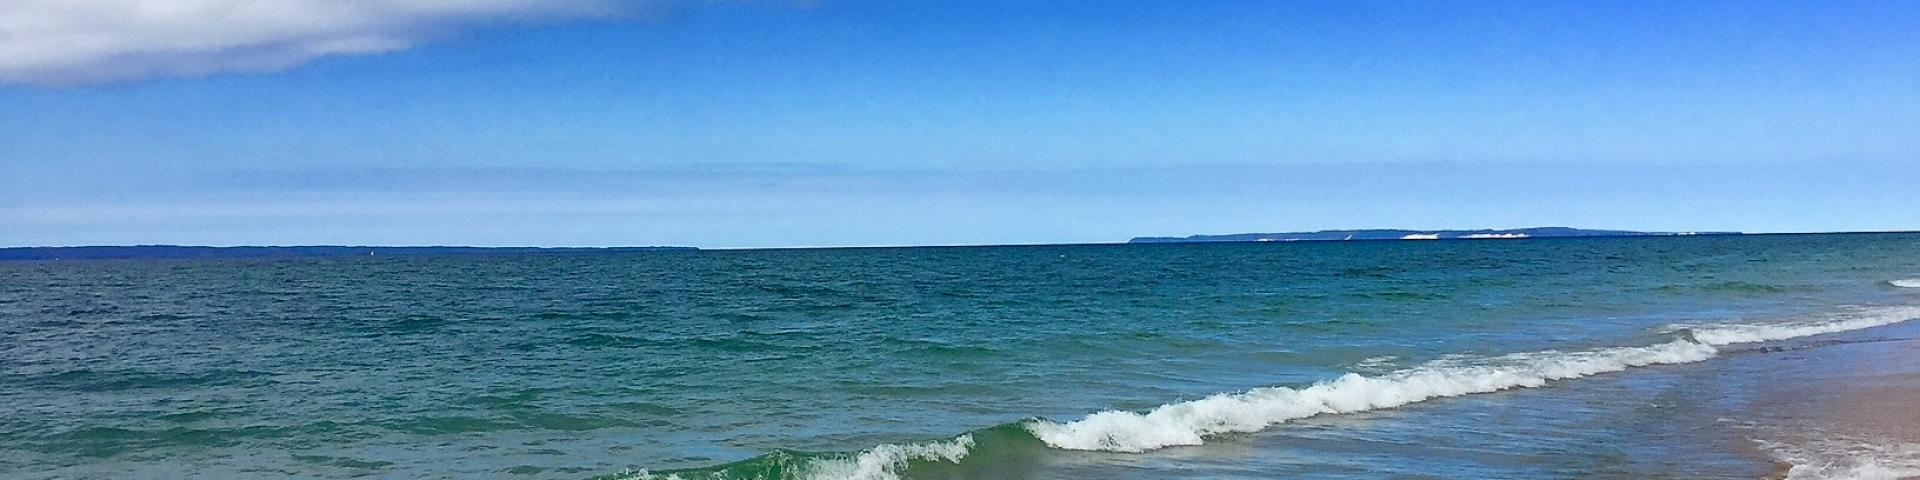 Lake Michigan and the Manitou Islands